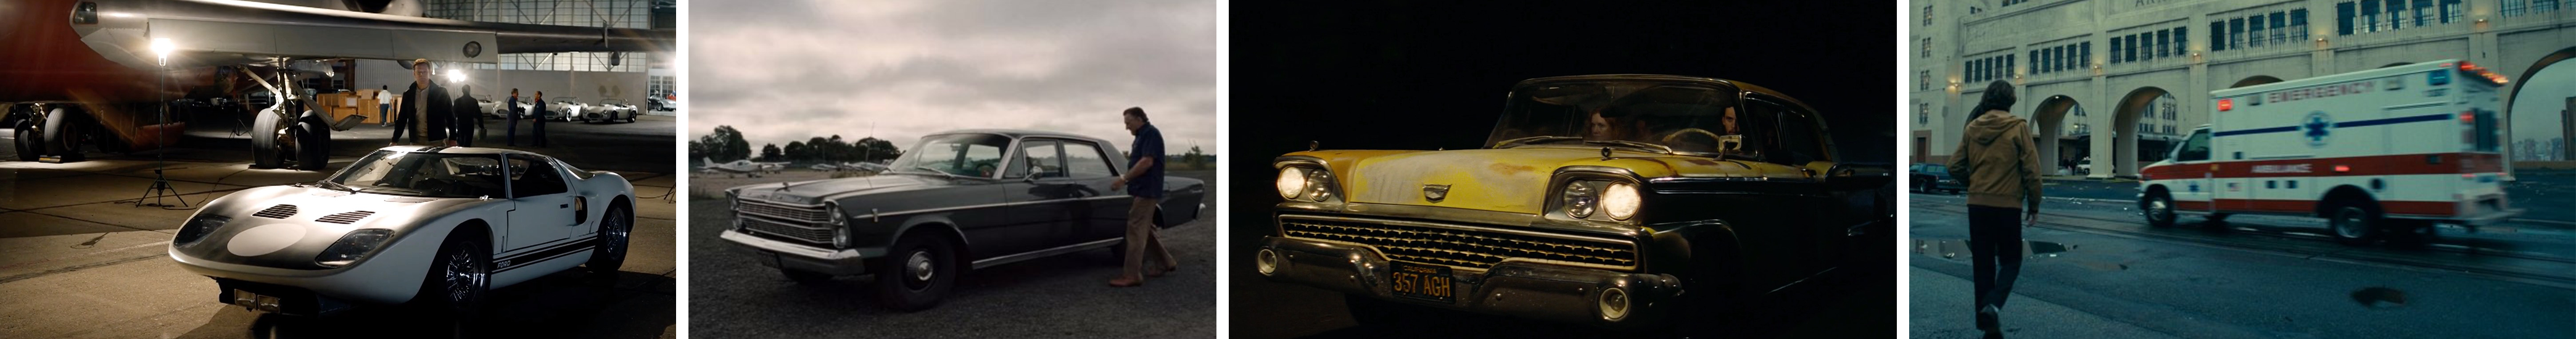 Ford, For V Ferrari, The irishman, once upon a time in hollywood, joker